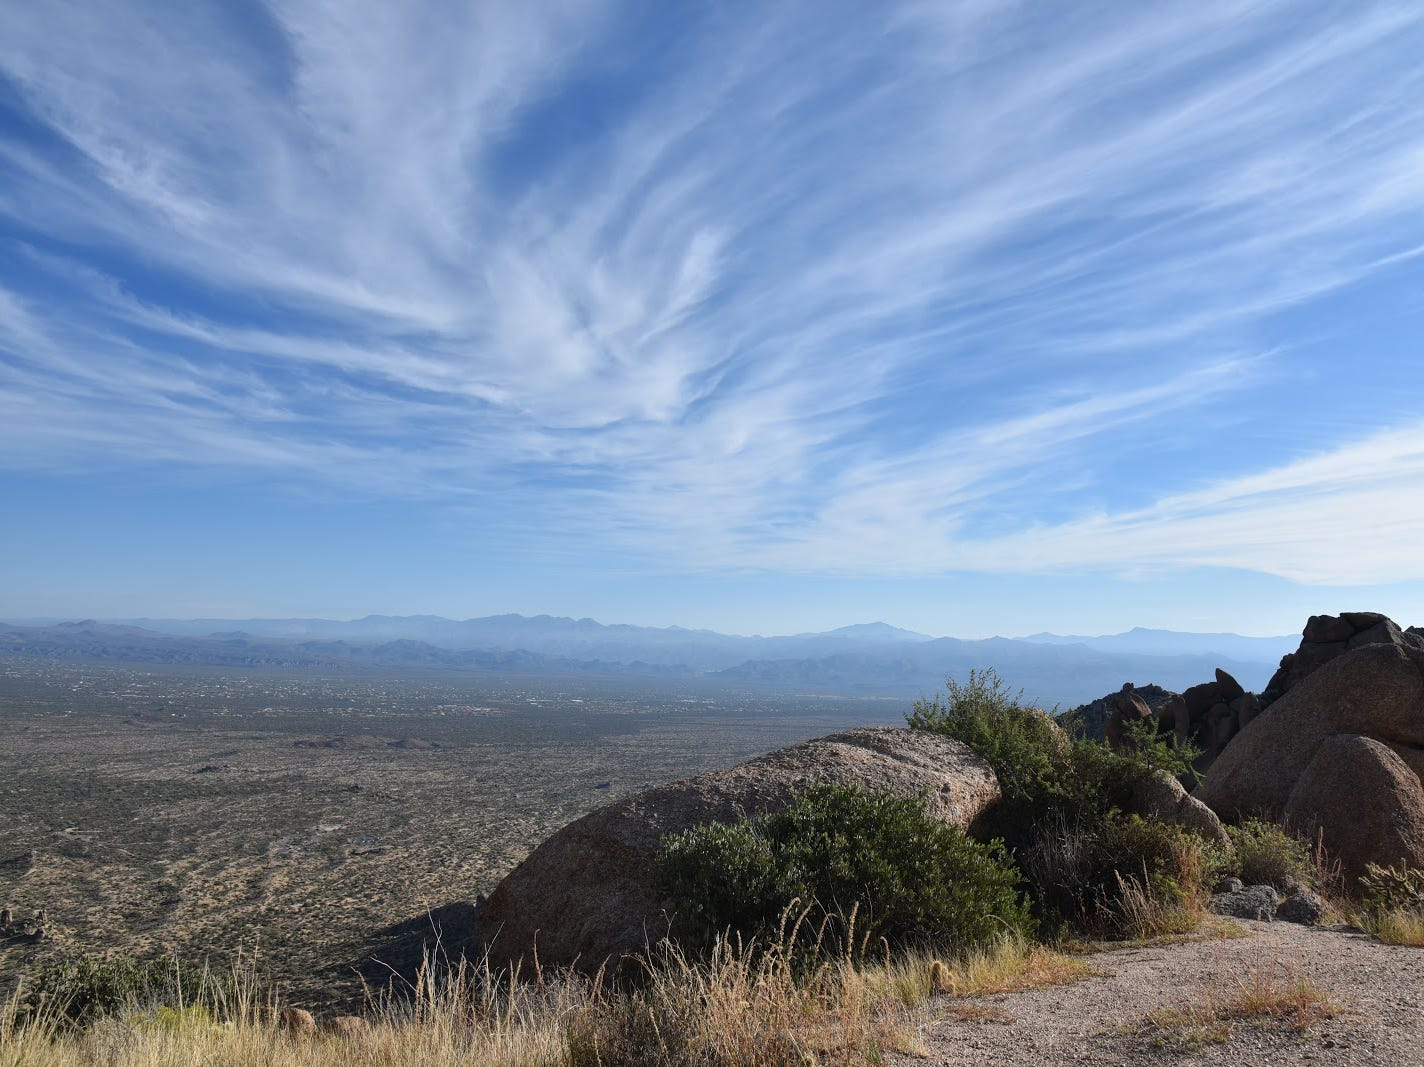 Many mountain hike destinations can be seen from the Tom's Thumb trail.